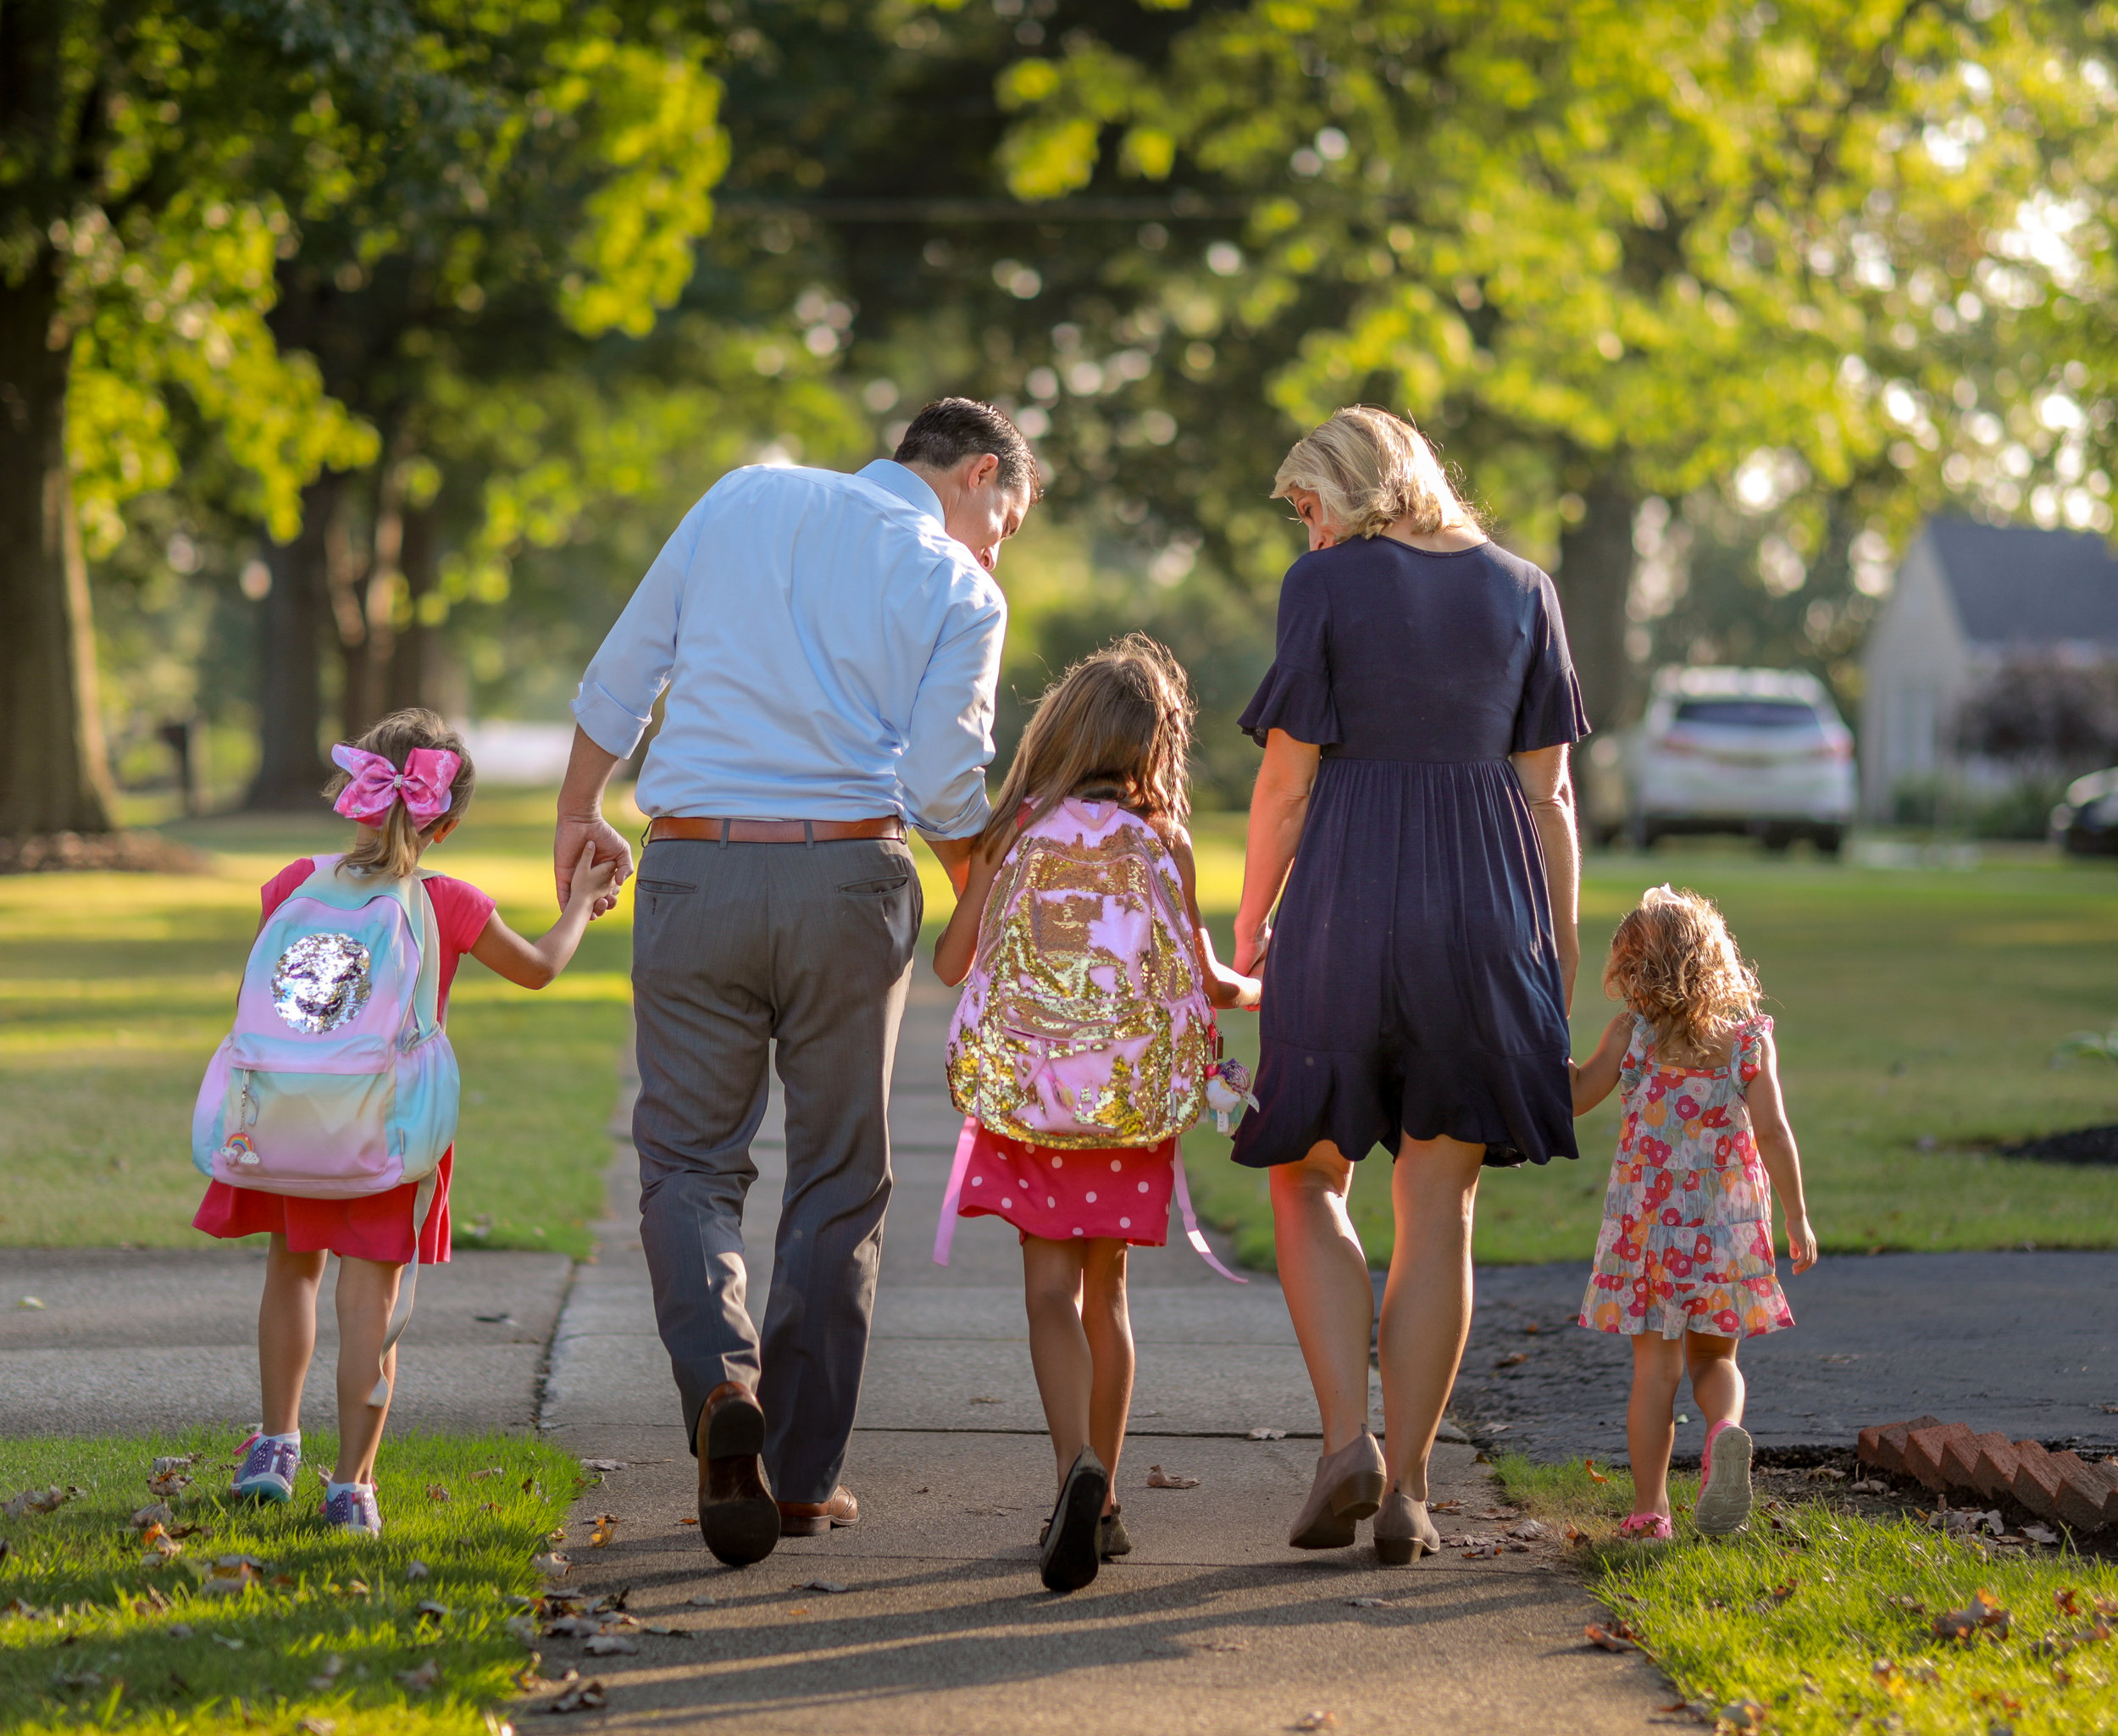 Secretary of State-Elect Frank LaRose pictured with his wife, Lauren LaRose, and their three daughters.